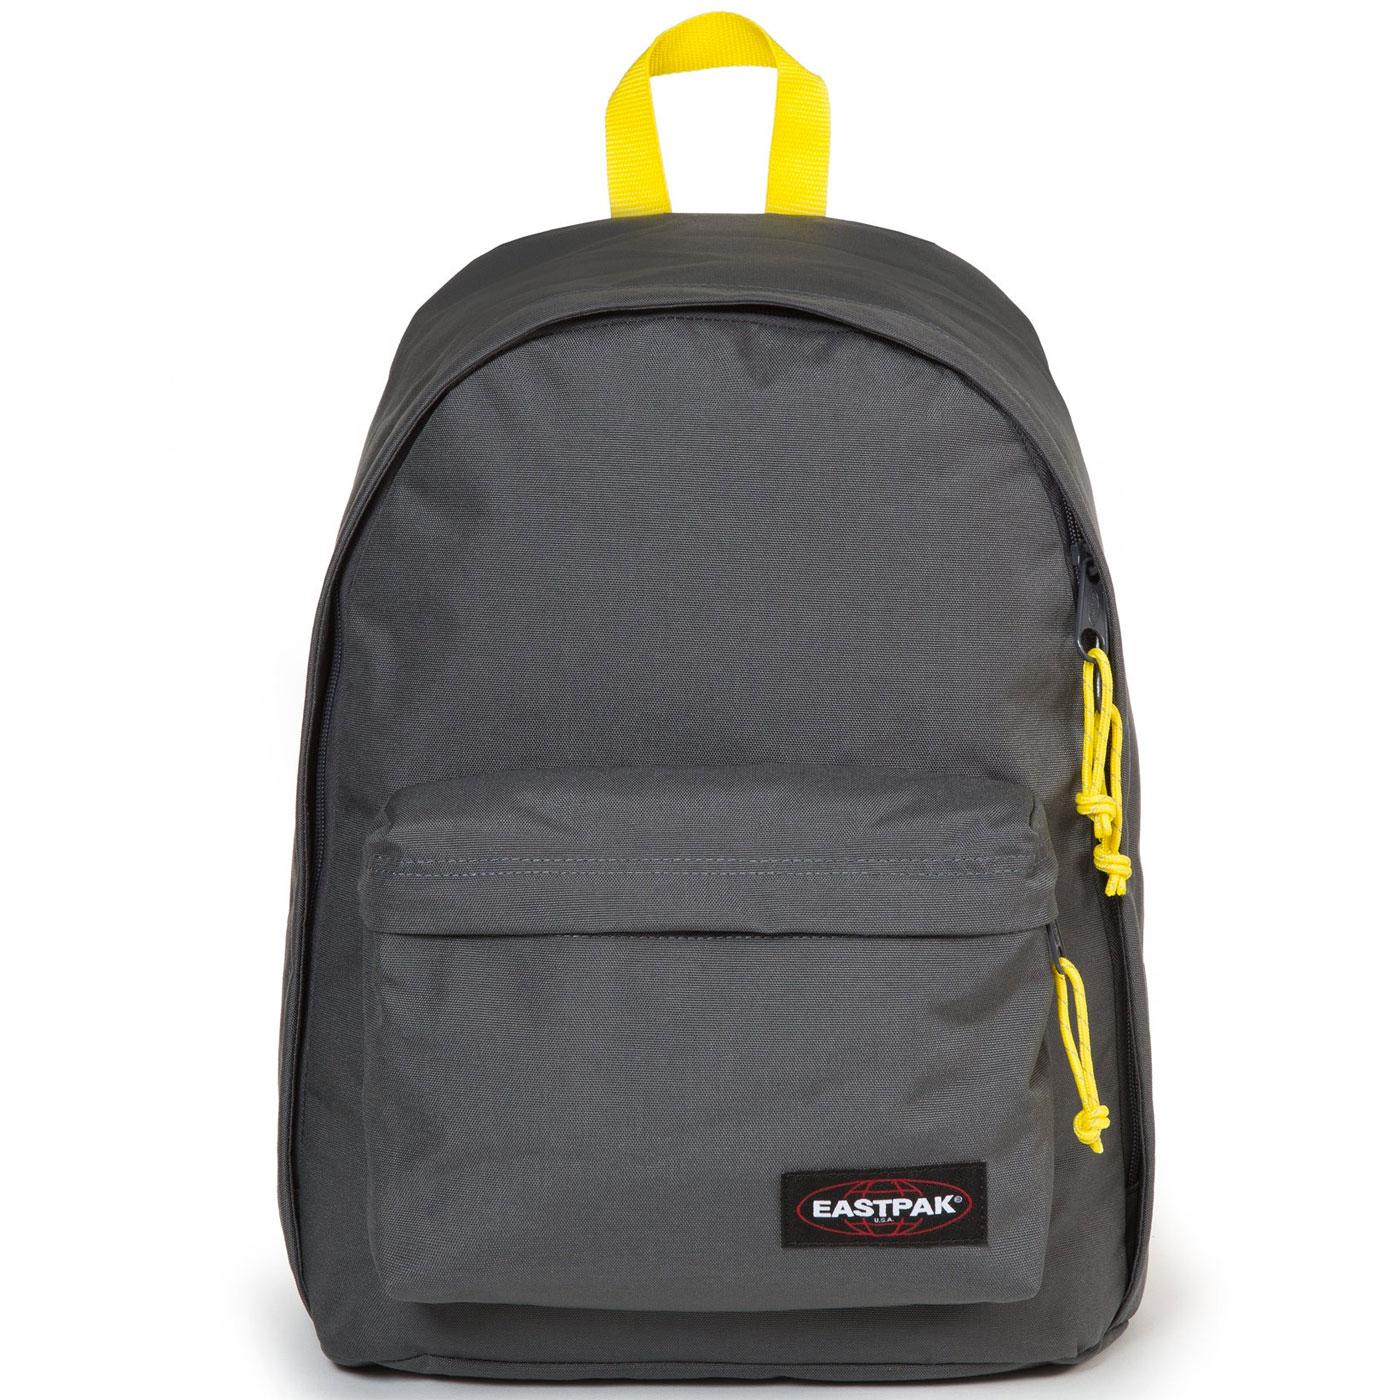 Out Of Office EASTPAK Colour Pop Laptop Backpack G